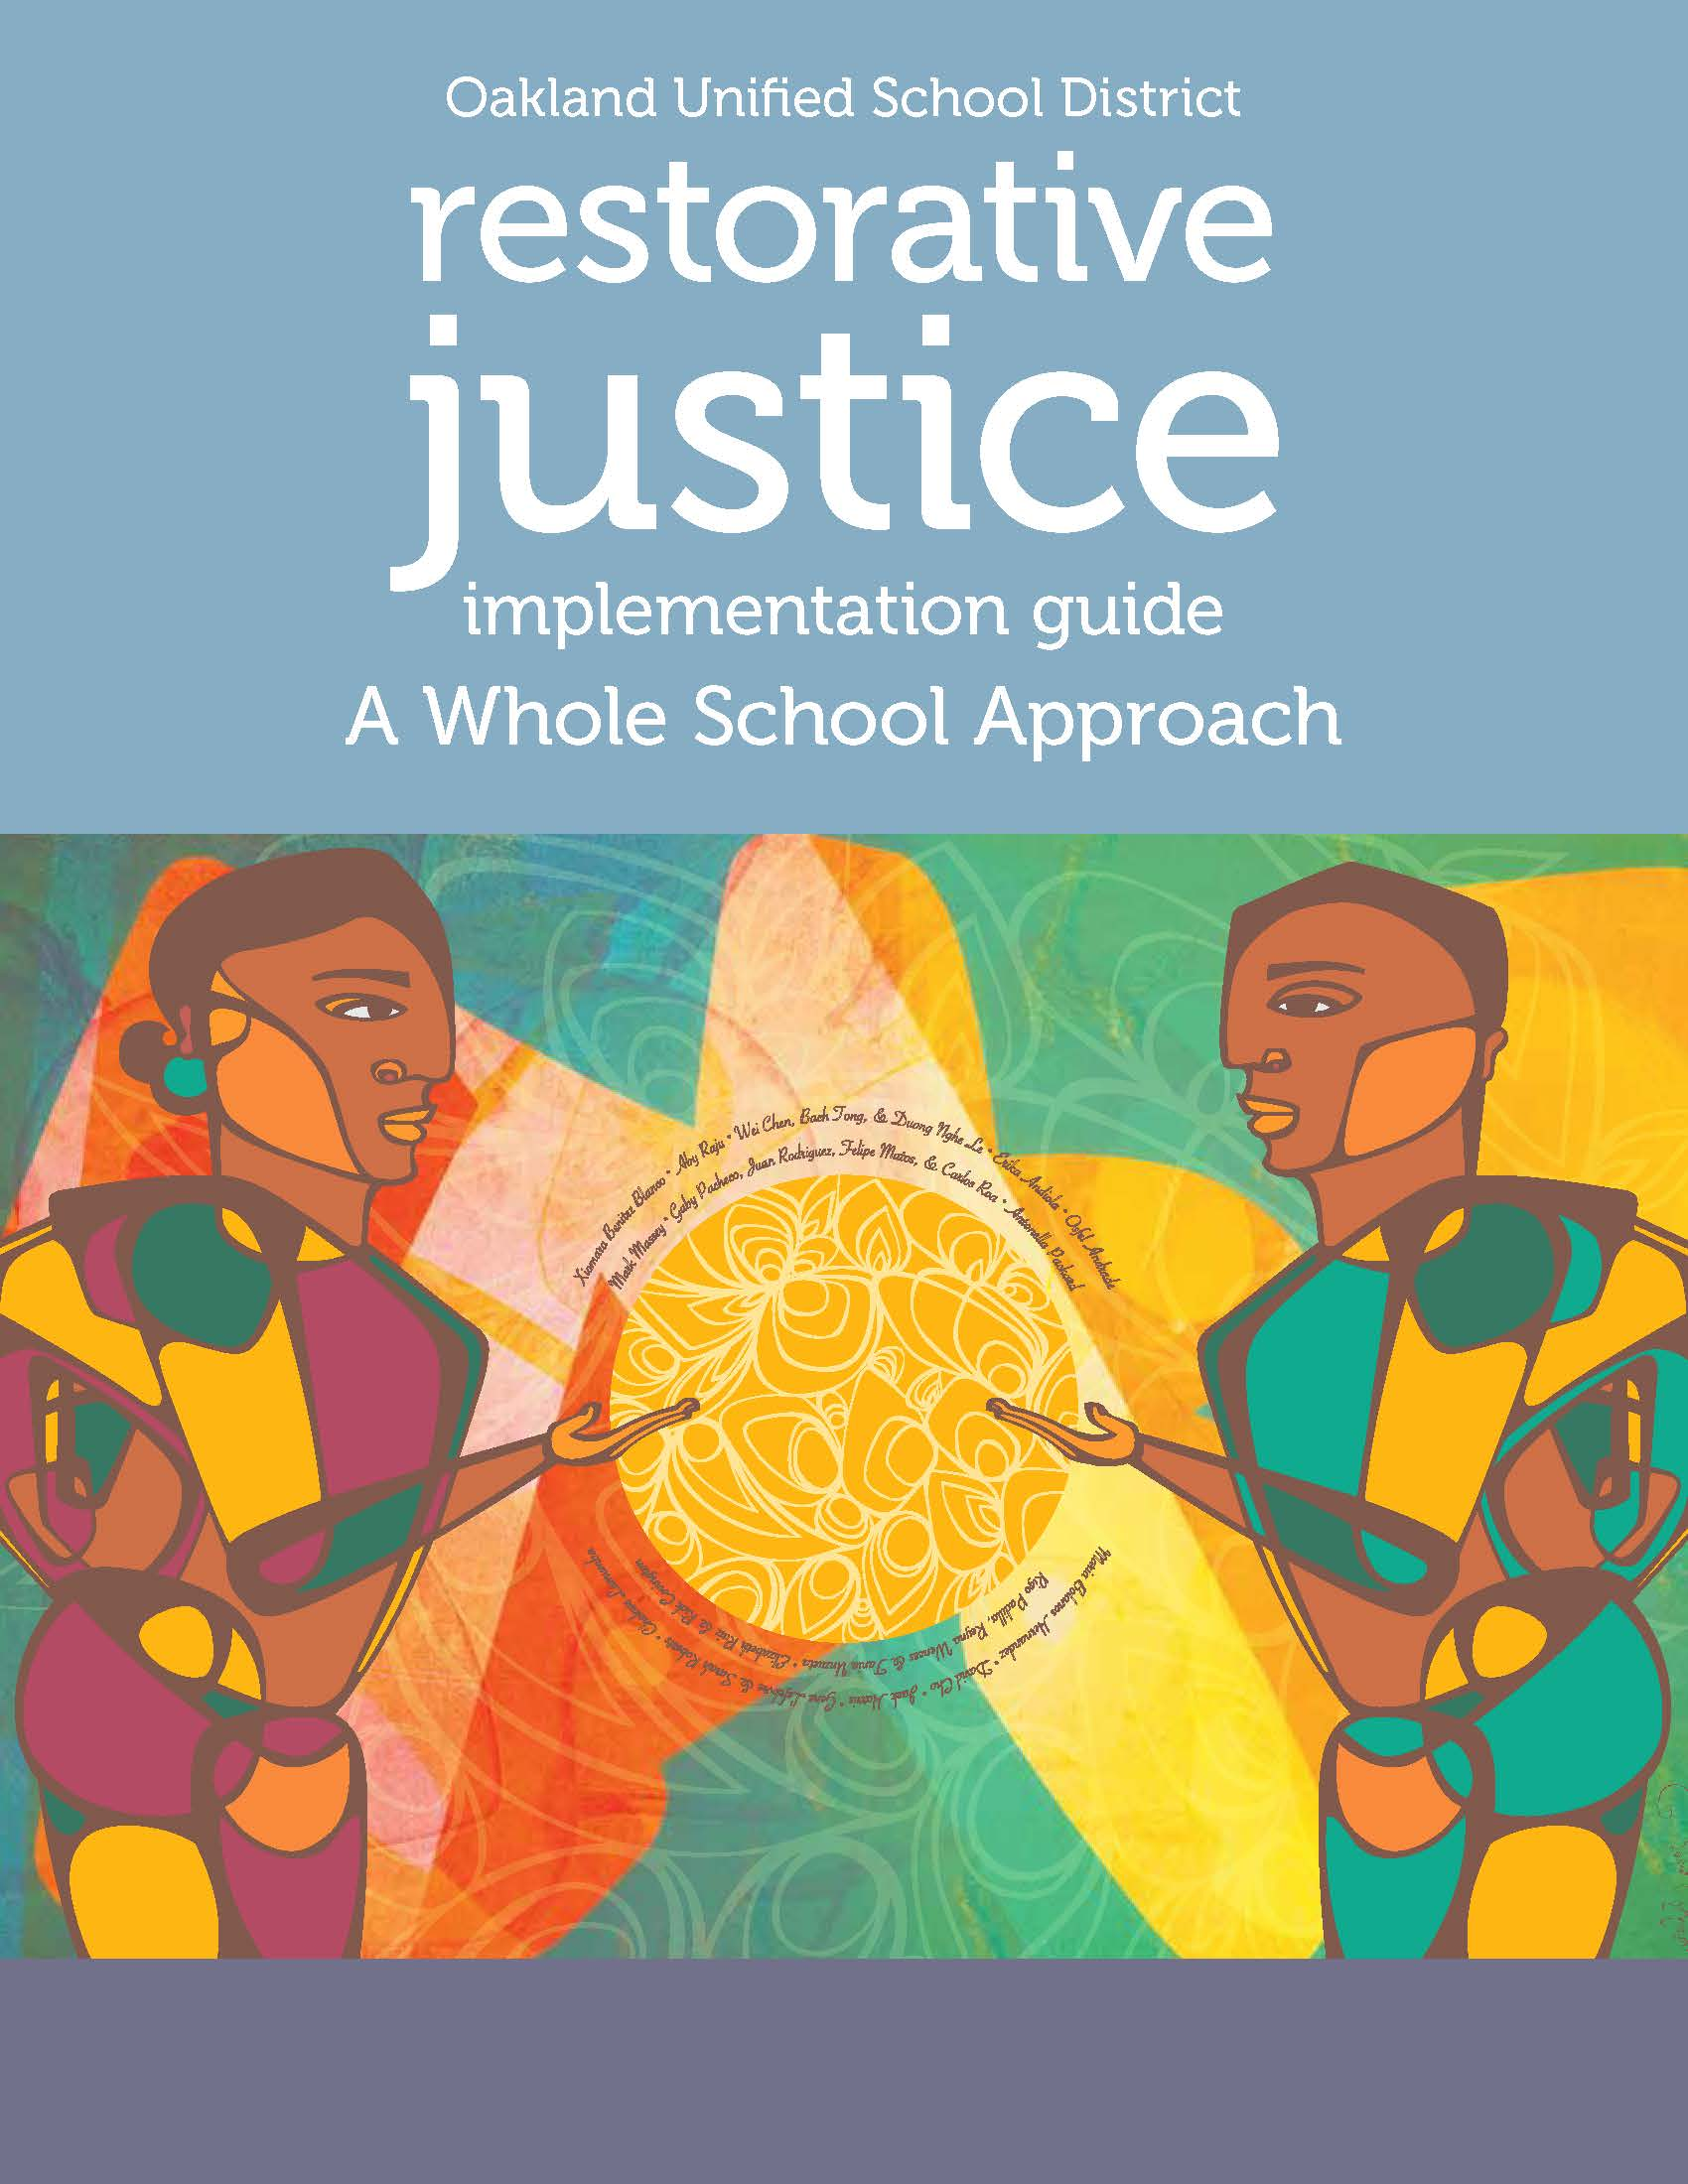 Implementation Guides For Restorative Practices